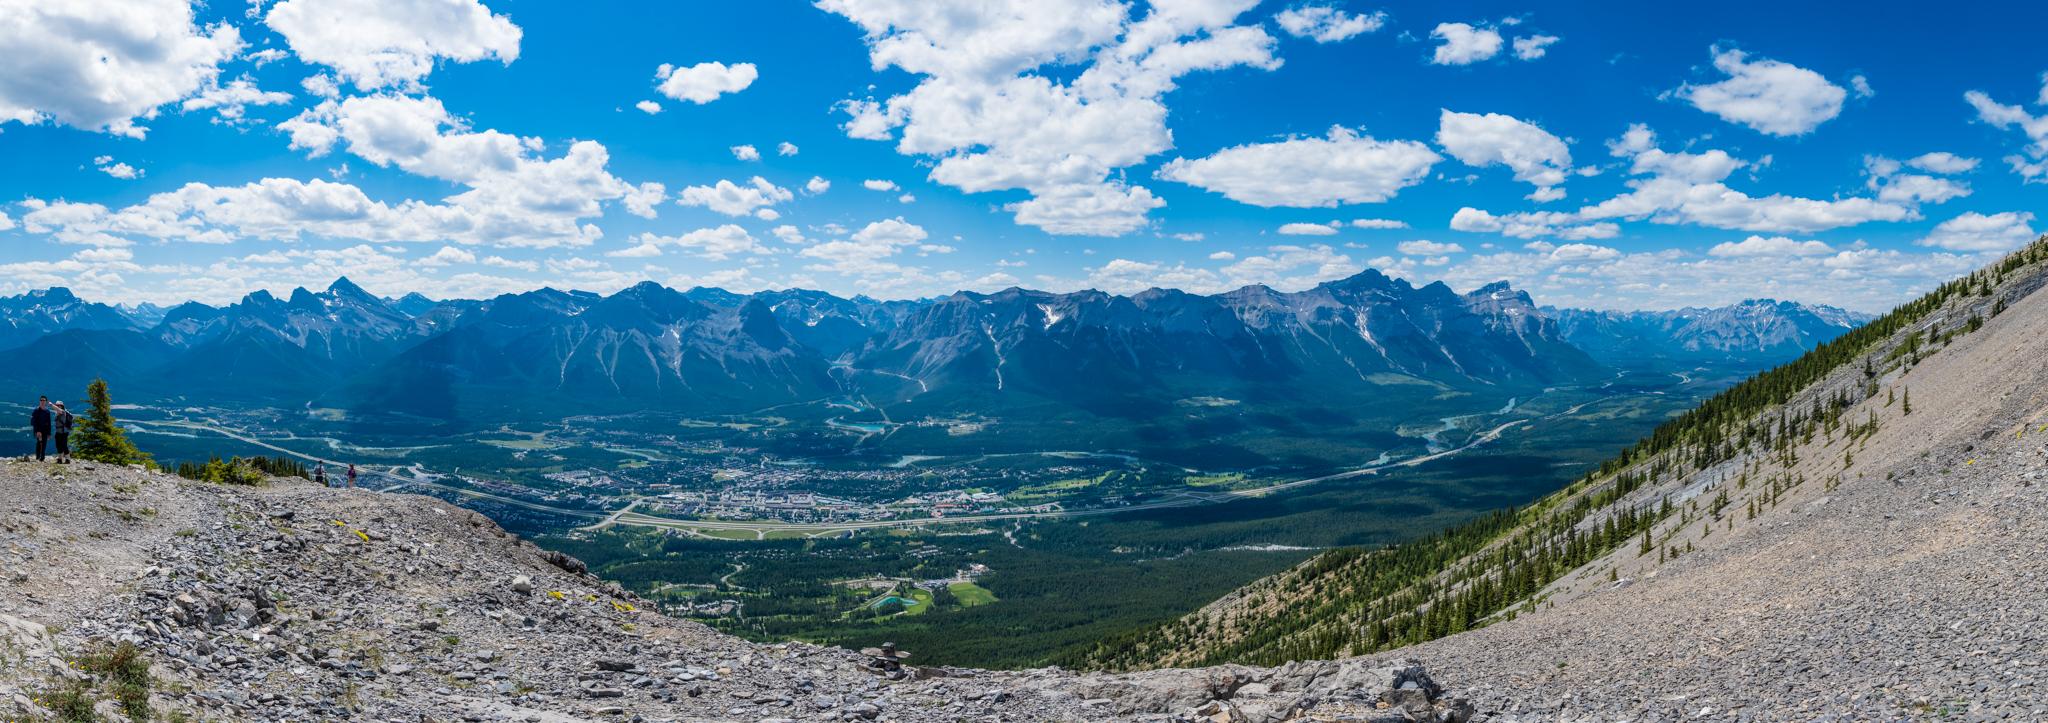 2017 07 03 Mount Lady Macdonald-11.jpg